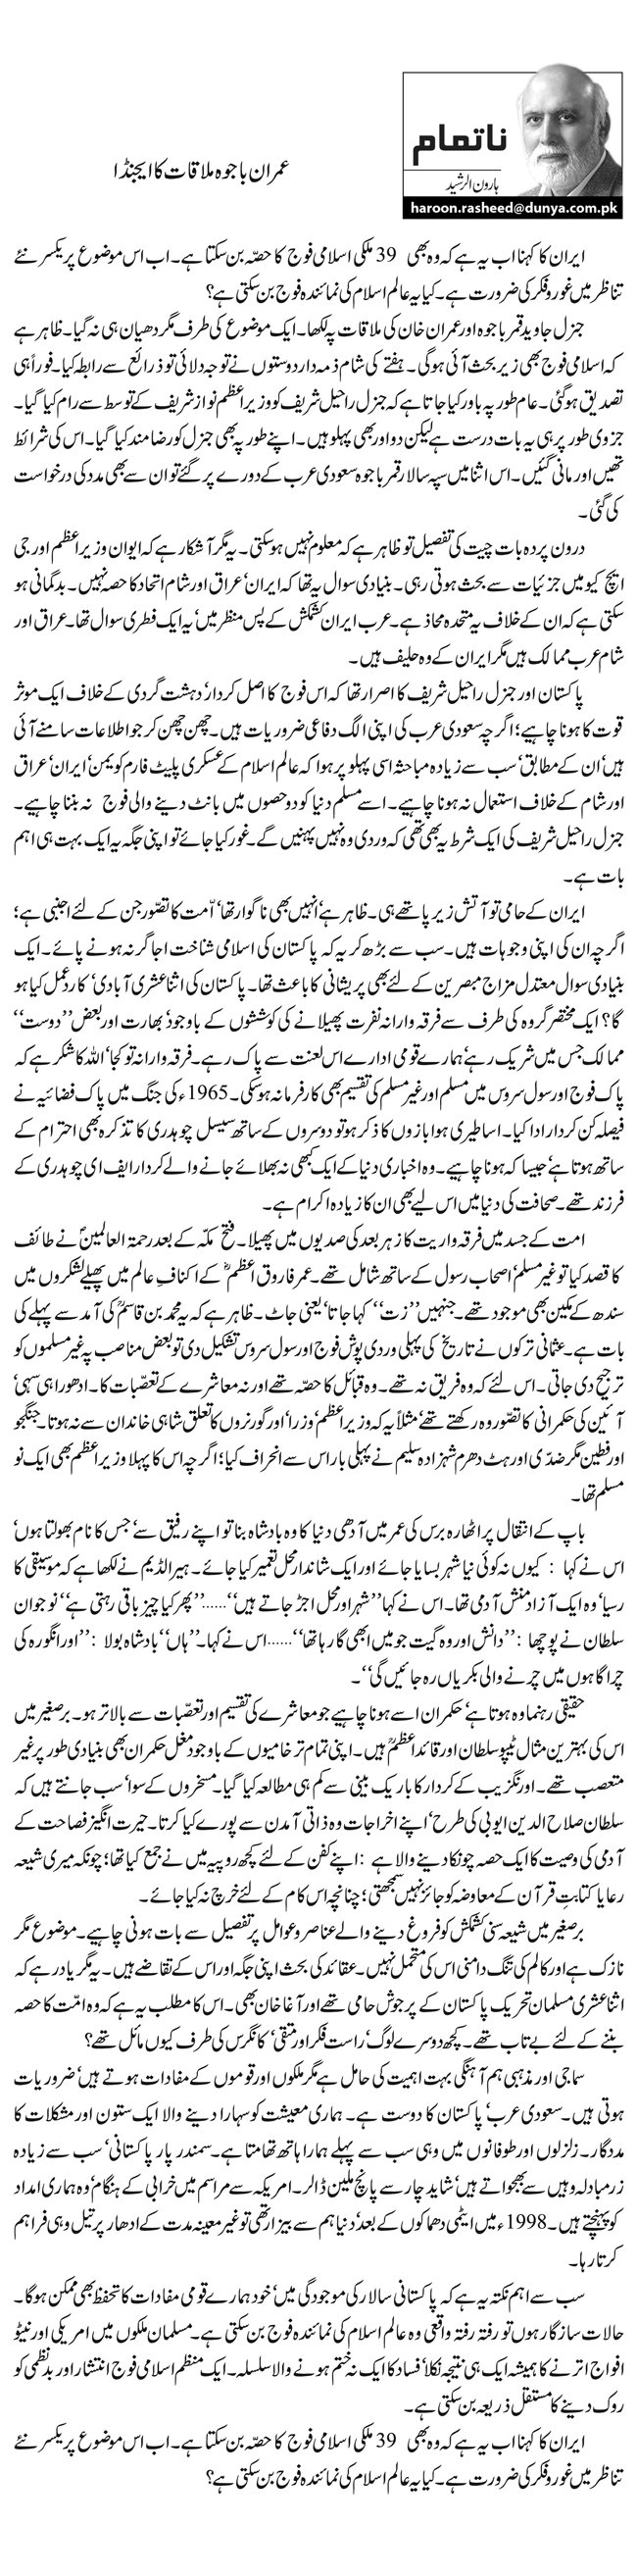 Column Kaar Daily Urdu Columns Urdu Columnists of